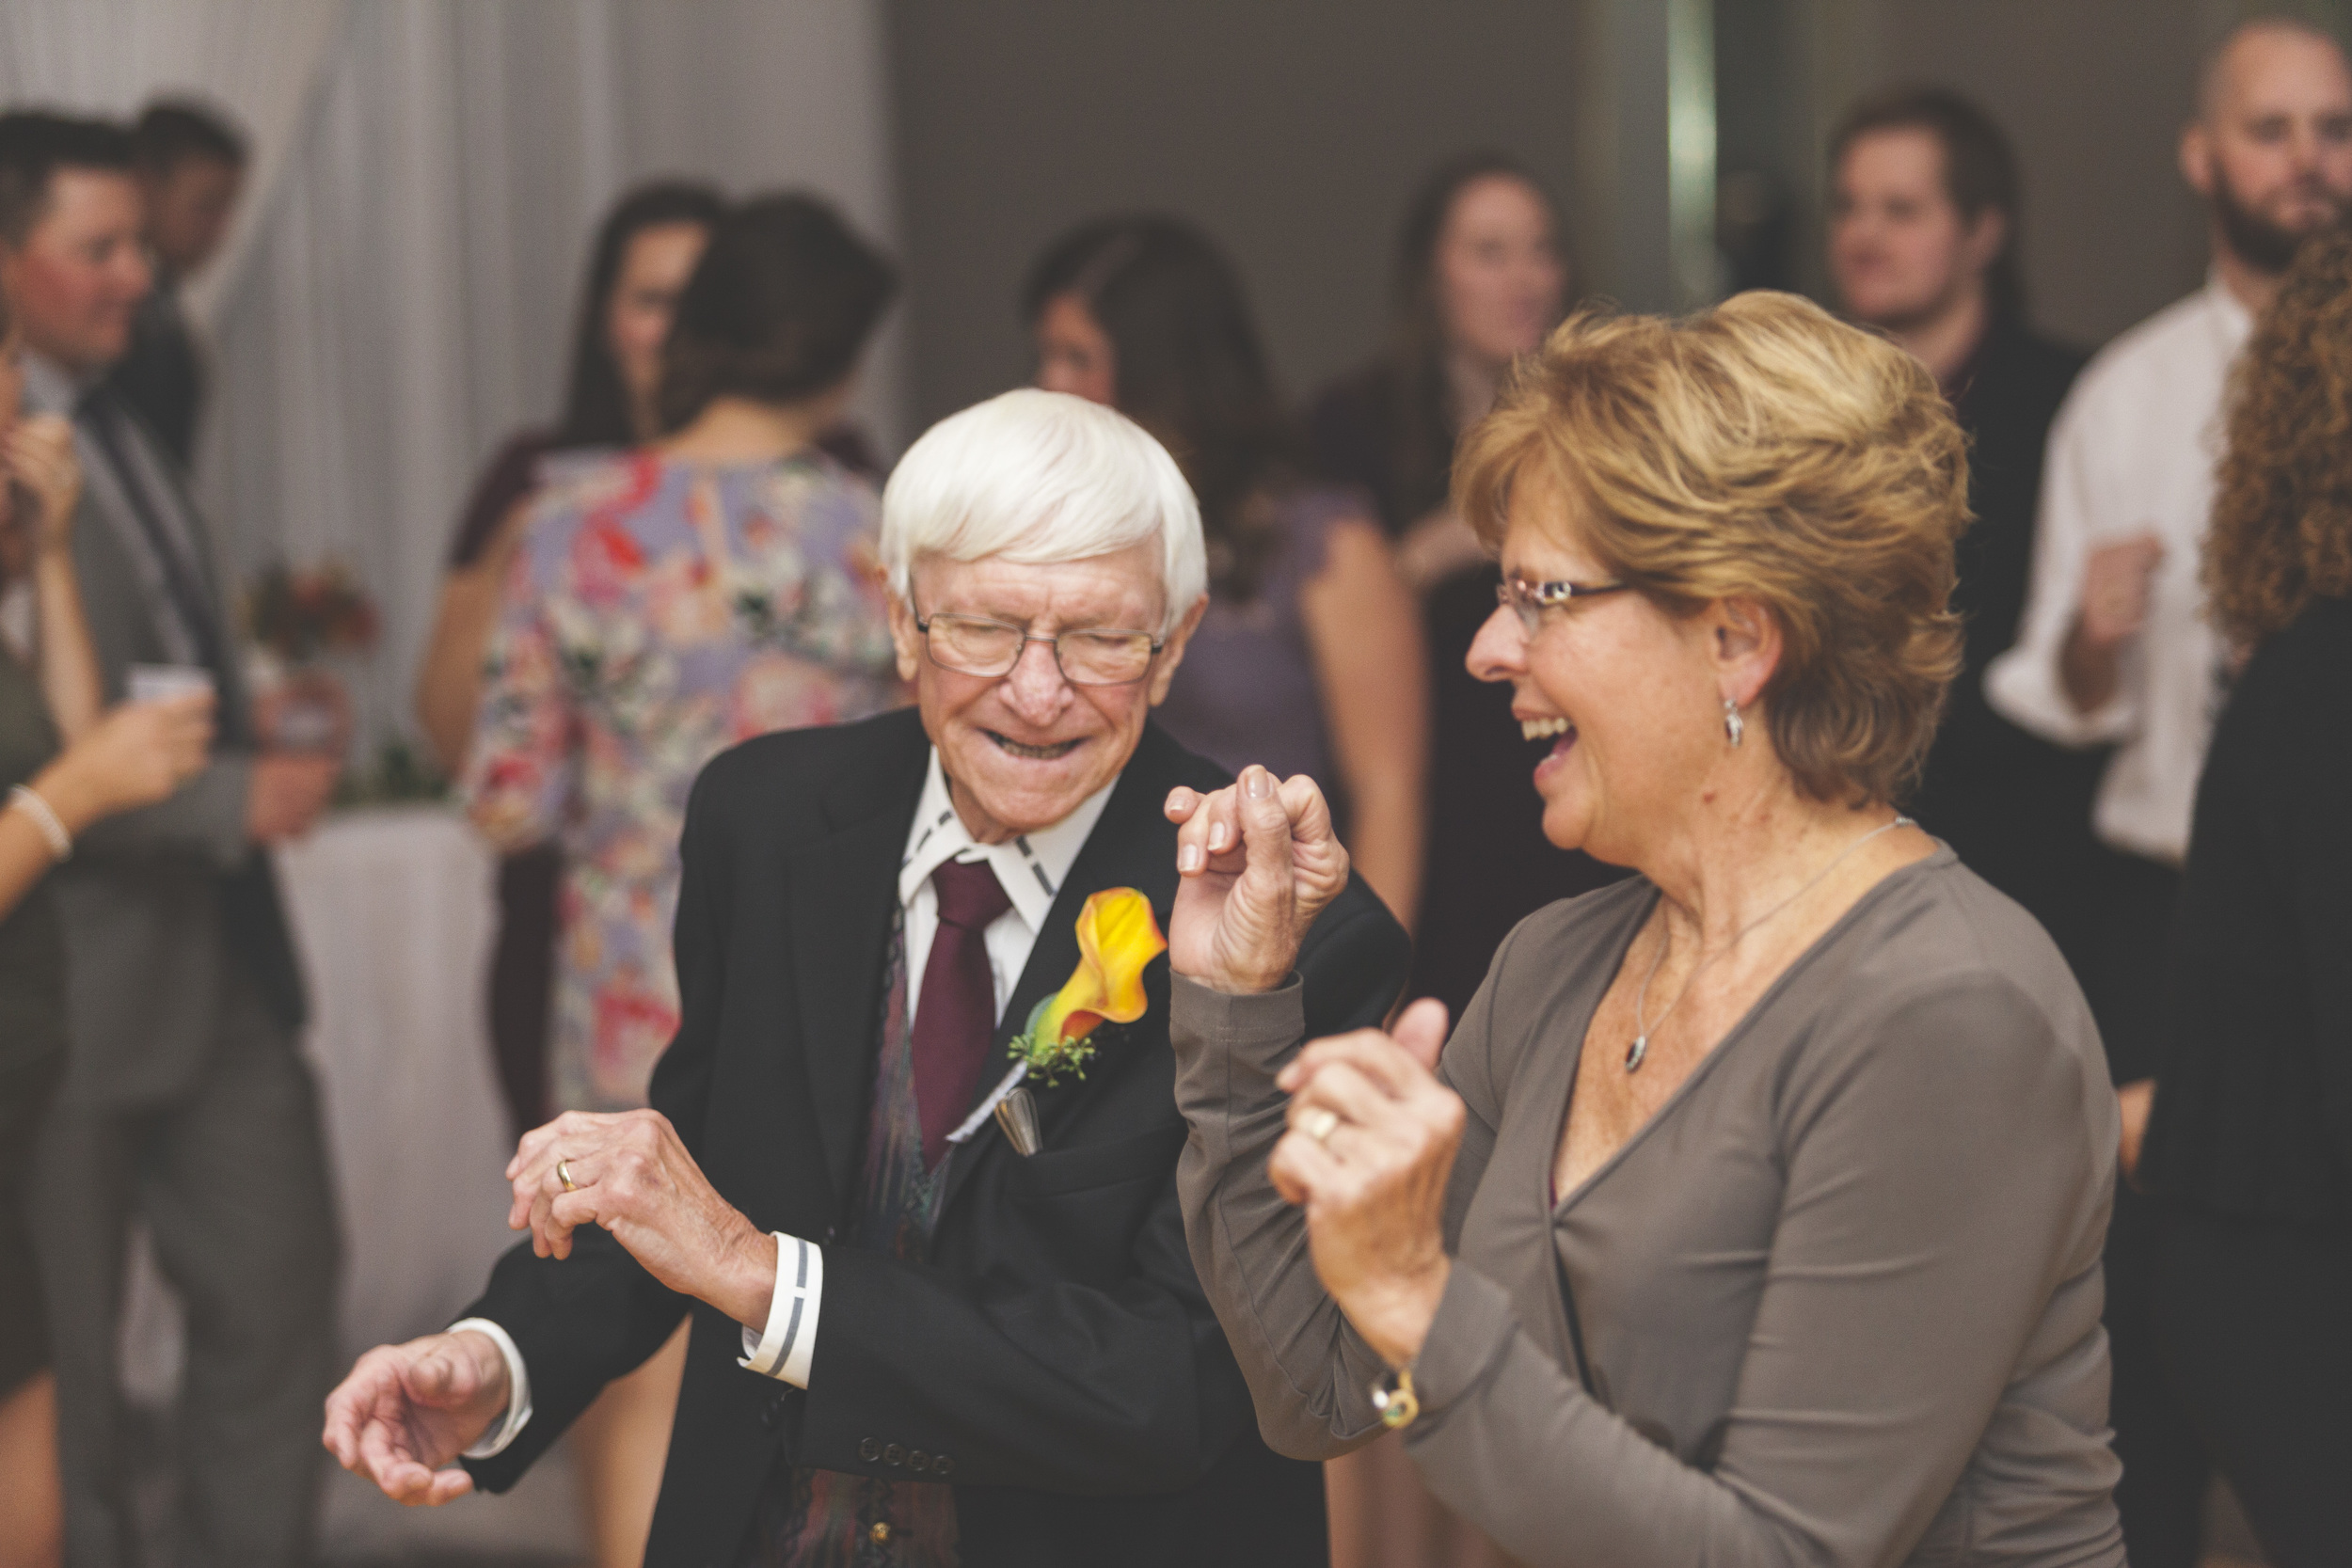 Young and old alike danced the night away at this wedding.